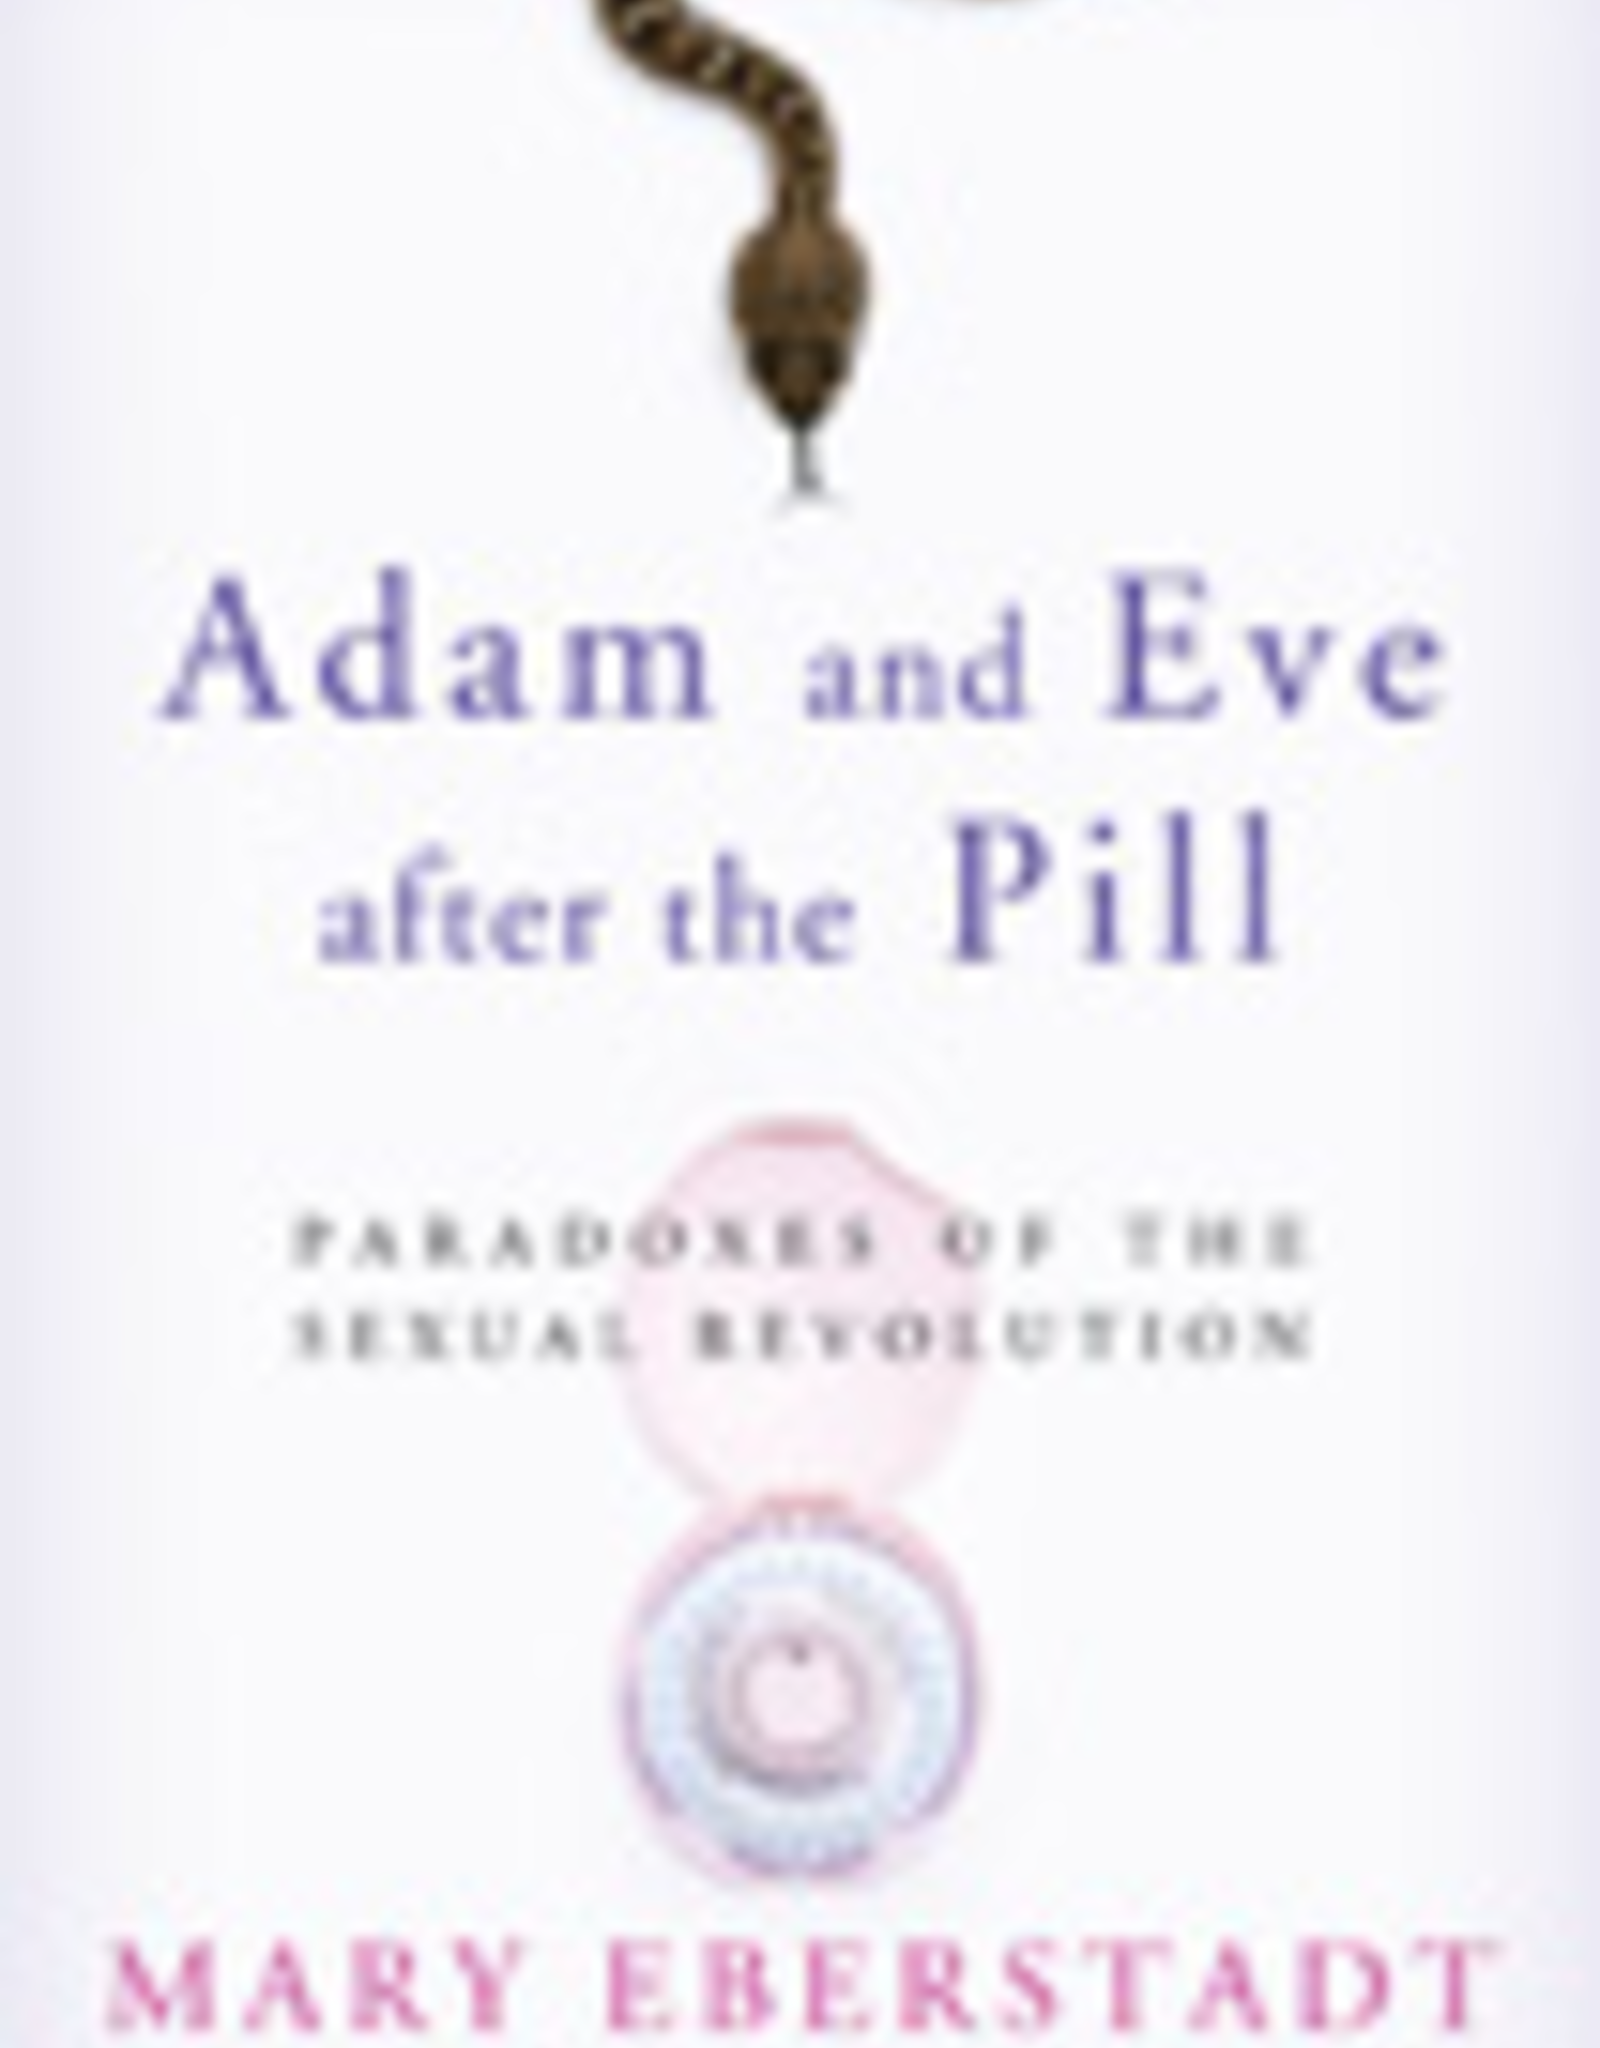 Ignatius Press Adam and Eve After the Pill:  Paradoxes of the Sexual Revolution, by Mary Eberstadt (hardcover)